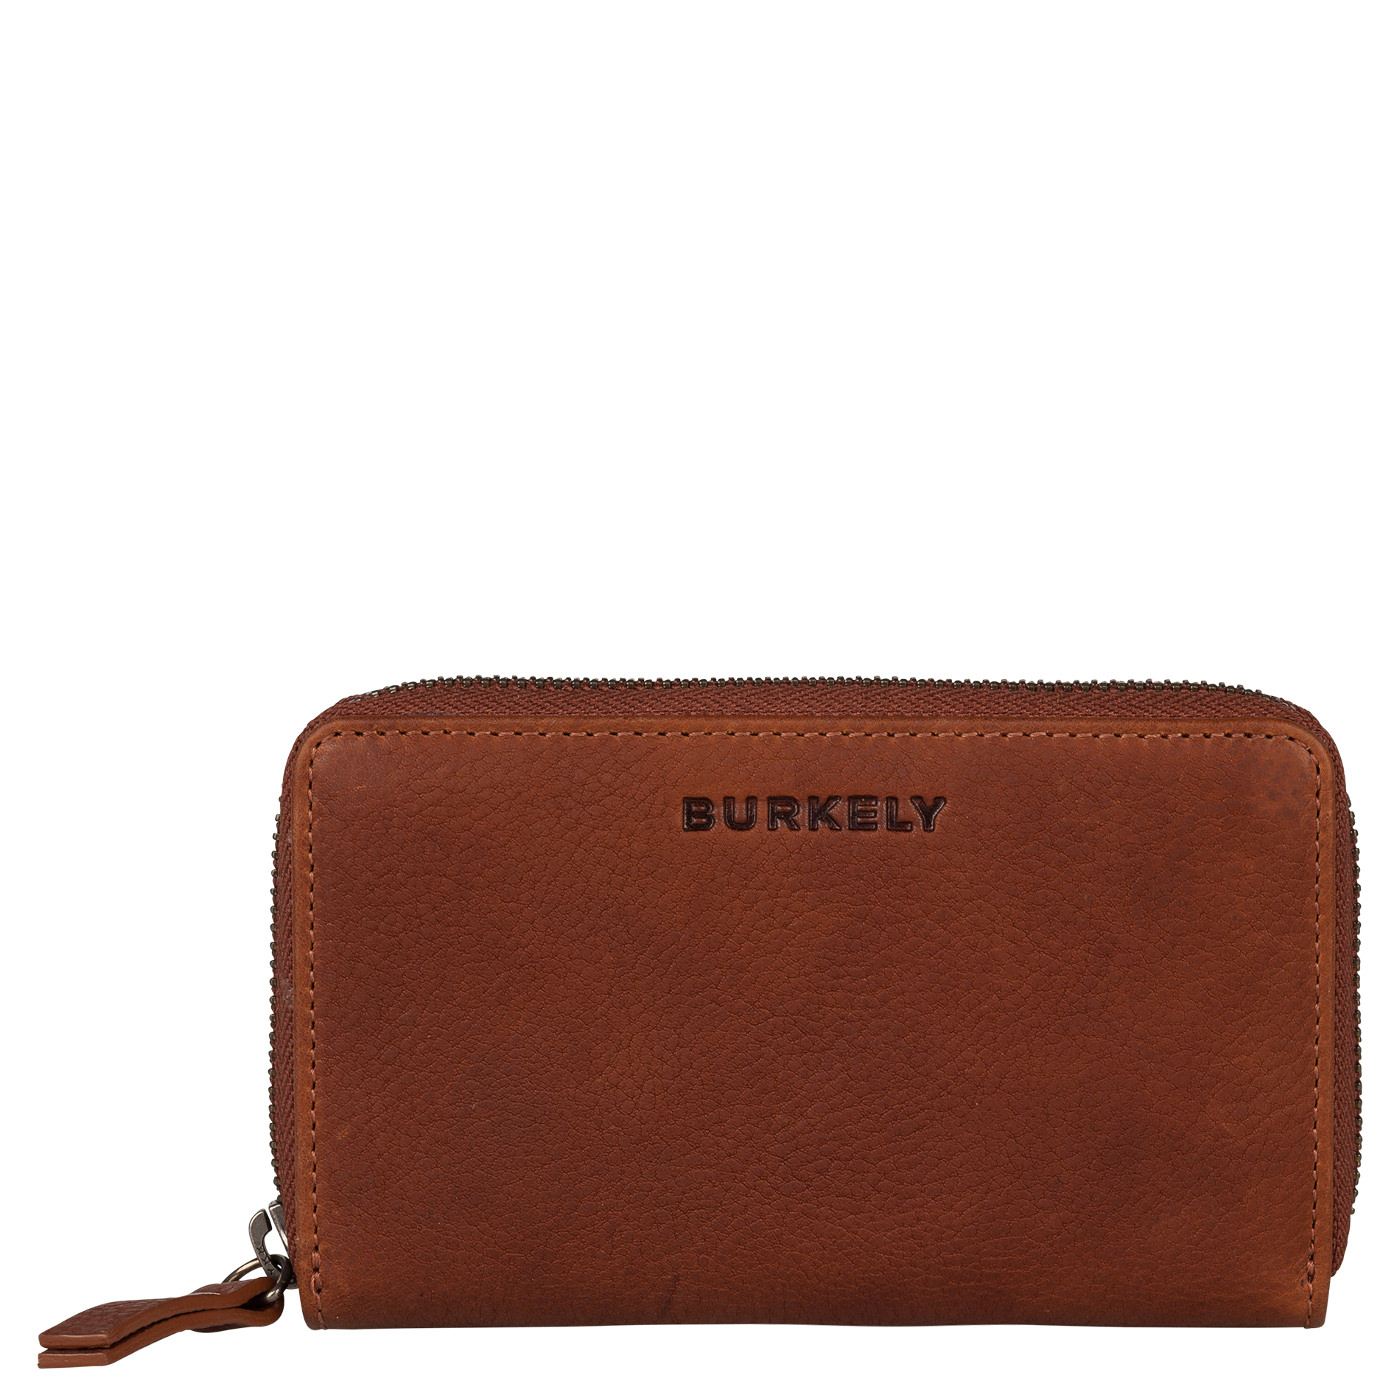 Bilde av Burkely Antique Avery Cognac Wallet 880756.24